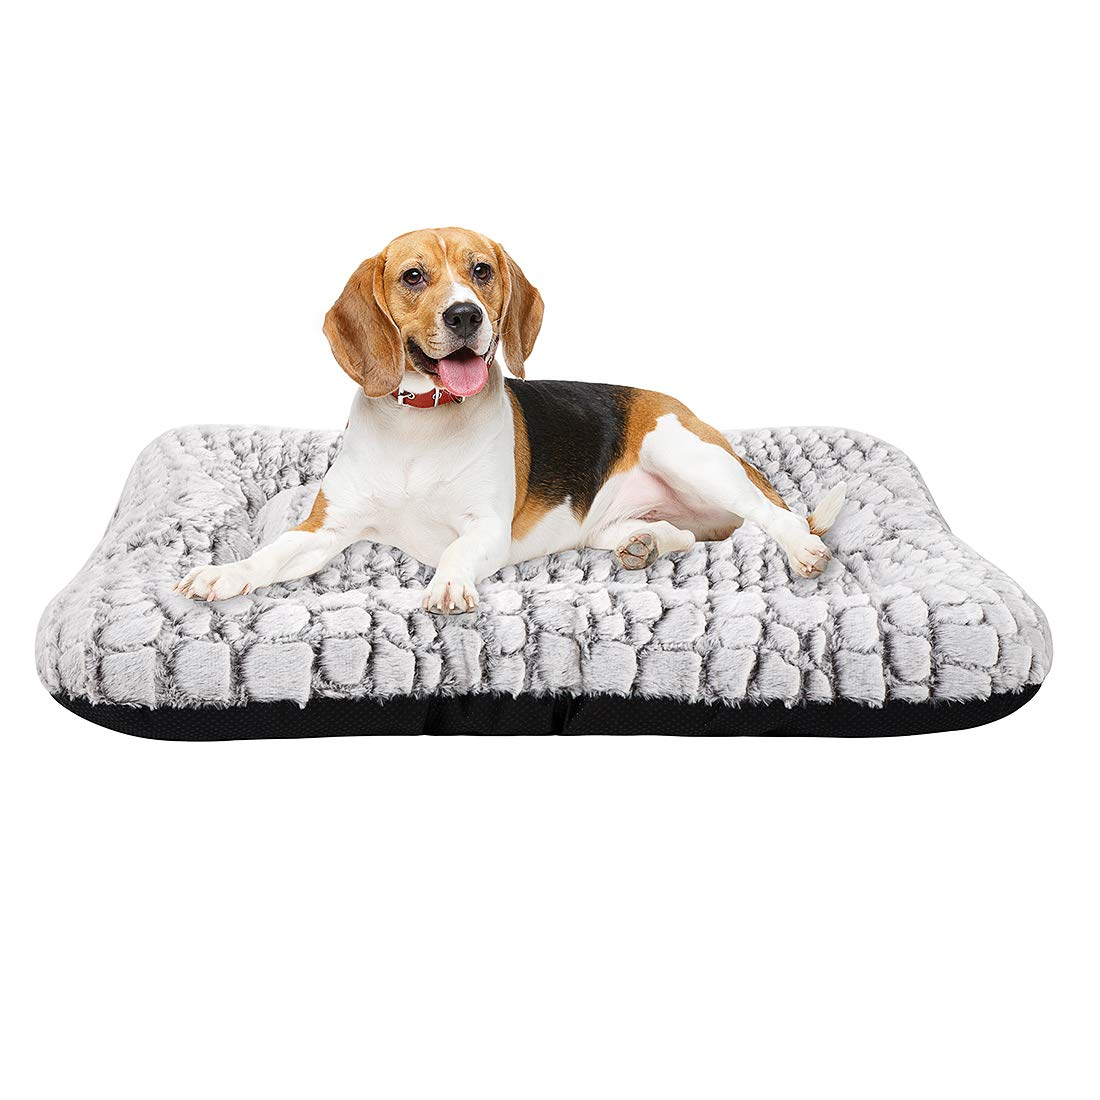 Coohom Deluxe Plush Dog Bed Pet Cushion Crate Mat,Washable Pet Bed for Medium Large Dogs and Dogs Crates(Medium,White)